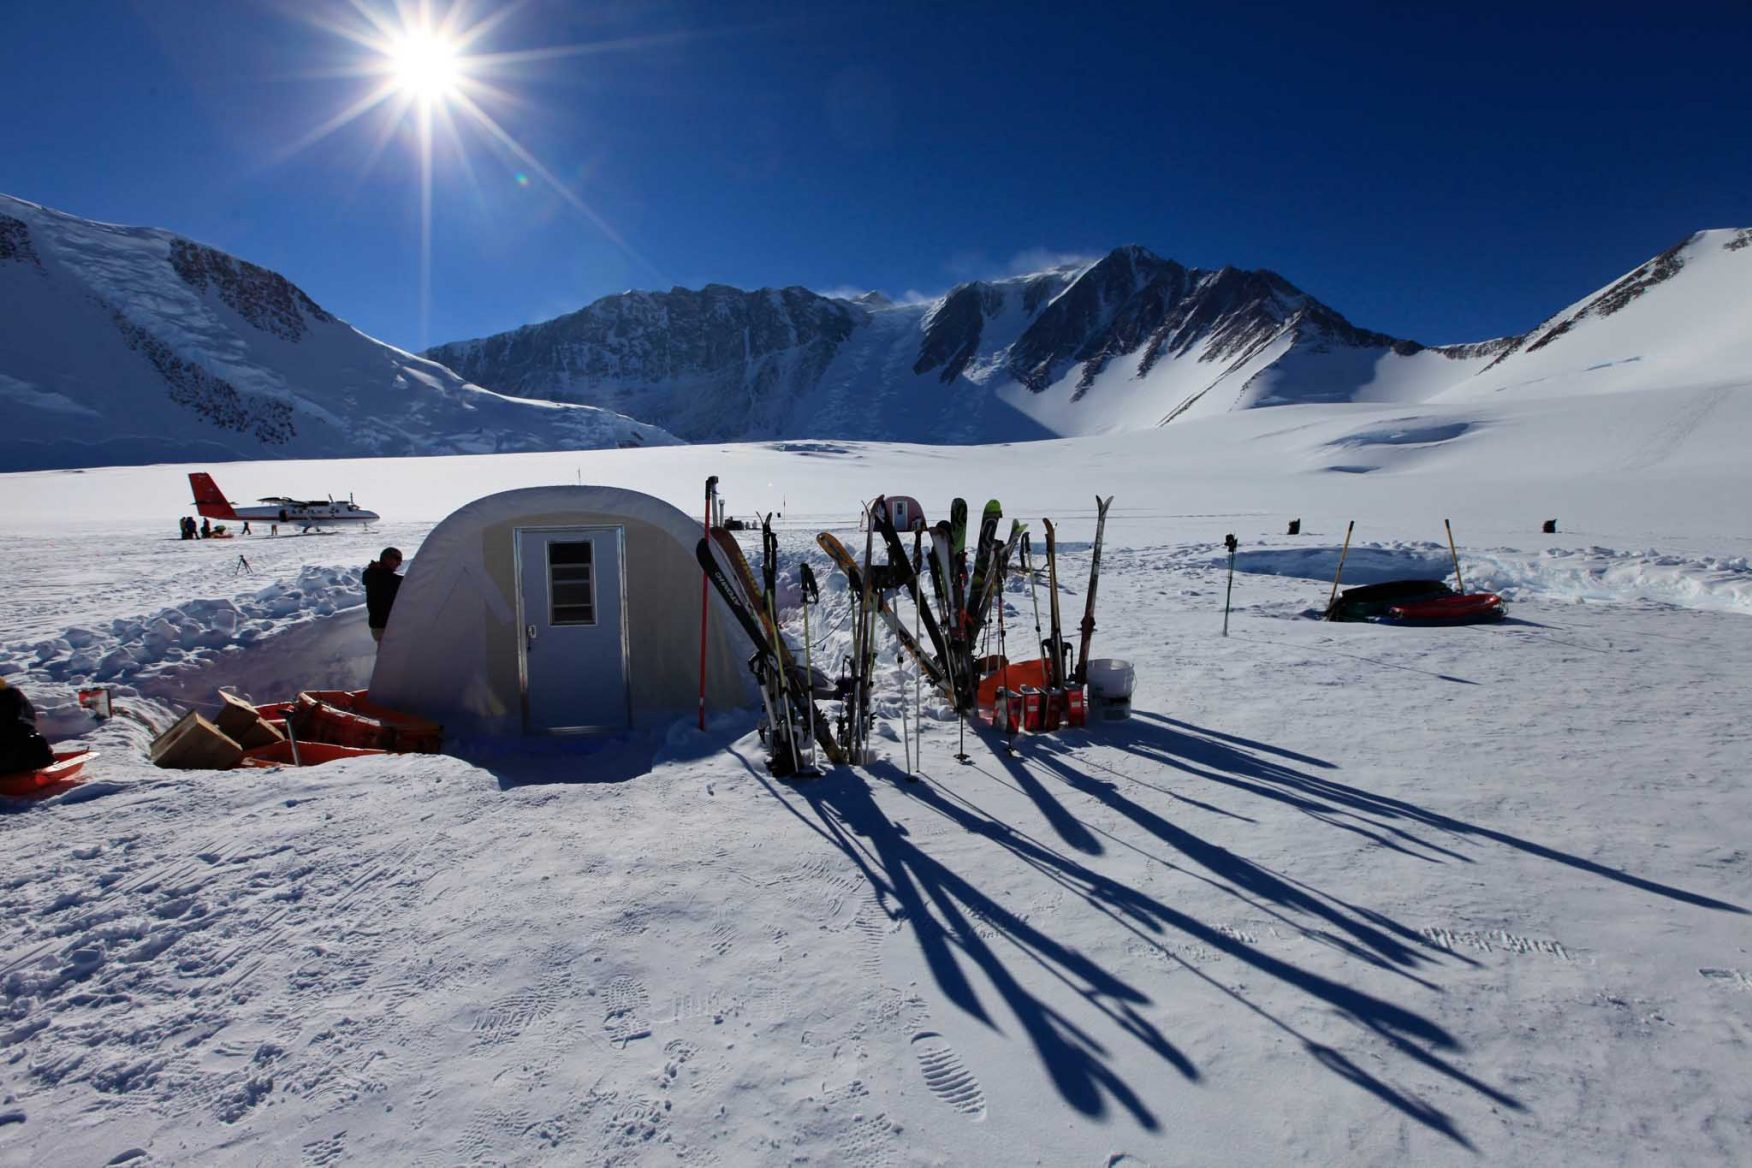 antarctic-expedition-camp